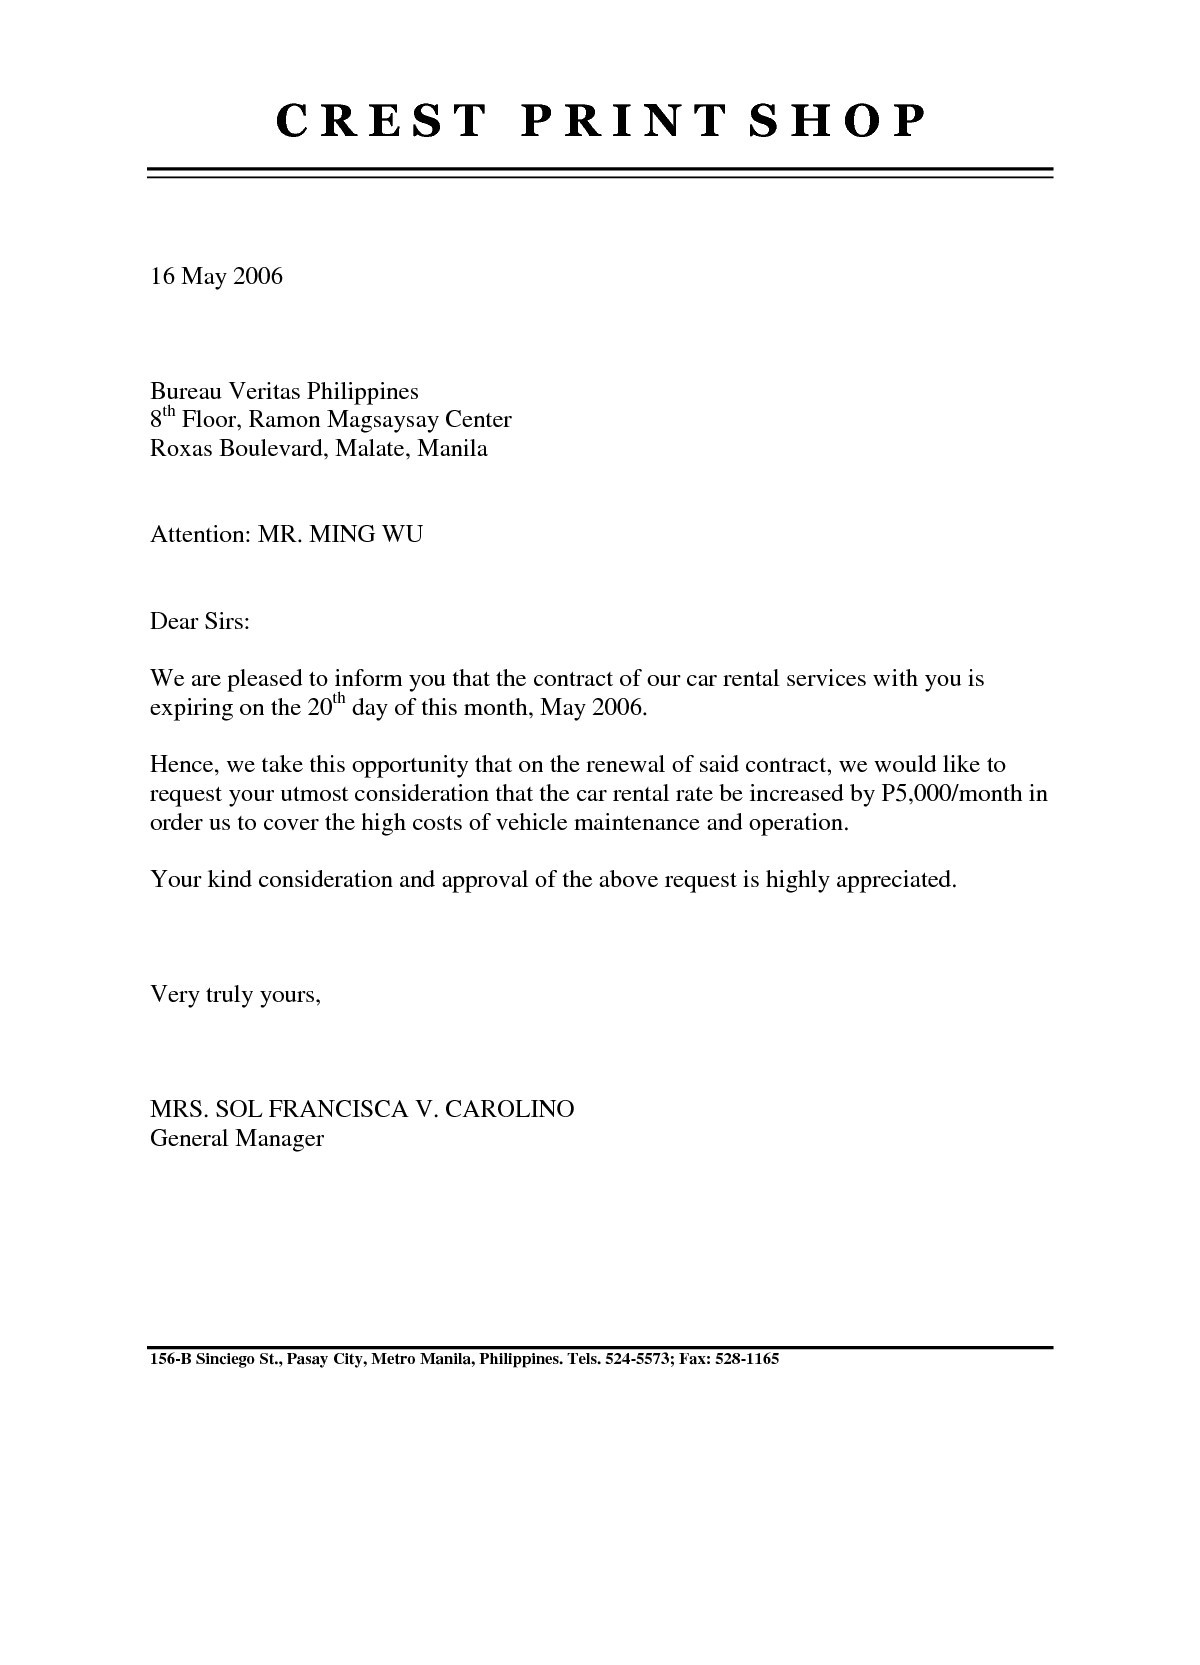 debt-negotiation-letter-template-of-proof-of-debt-letter-template Sample Debt Validation Letter Template Pdf on amcol for, credit warrior sample, template.pdf fl, example arkansas, sample request, credit card,